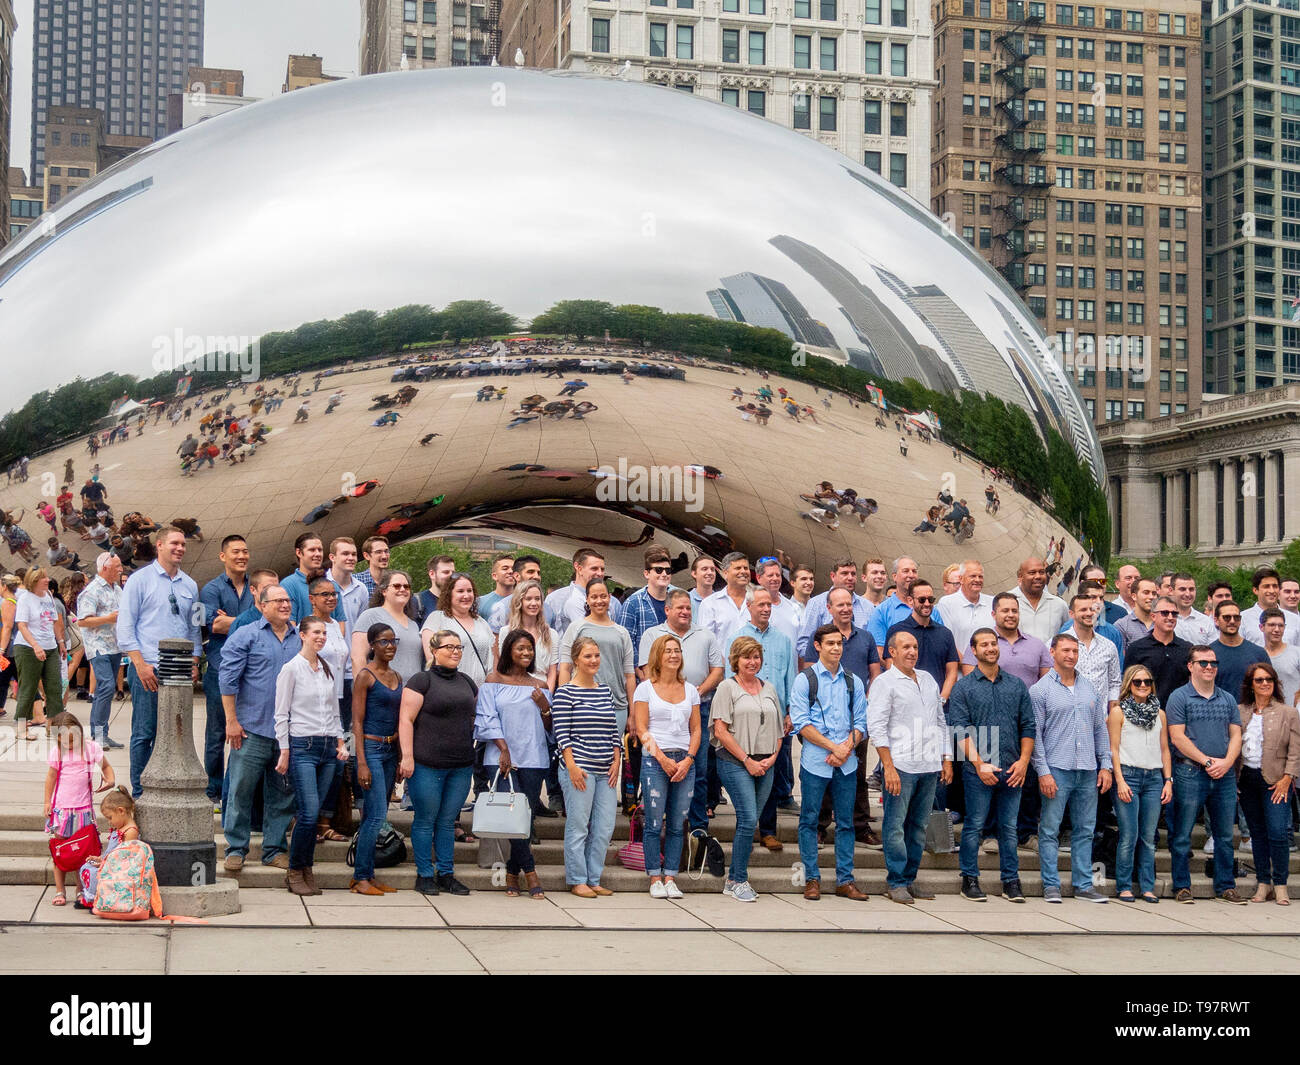 Tourists pose for a group photo at Cloud Gate in Millenium Park, Chicago. Cloud Gate is a public sculpture by Indian-born British artist Sir Anish Kapoor, that is the centerpiece of AT&T Plaza at Millennium Park in the Loop community area. - Stock Image